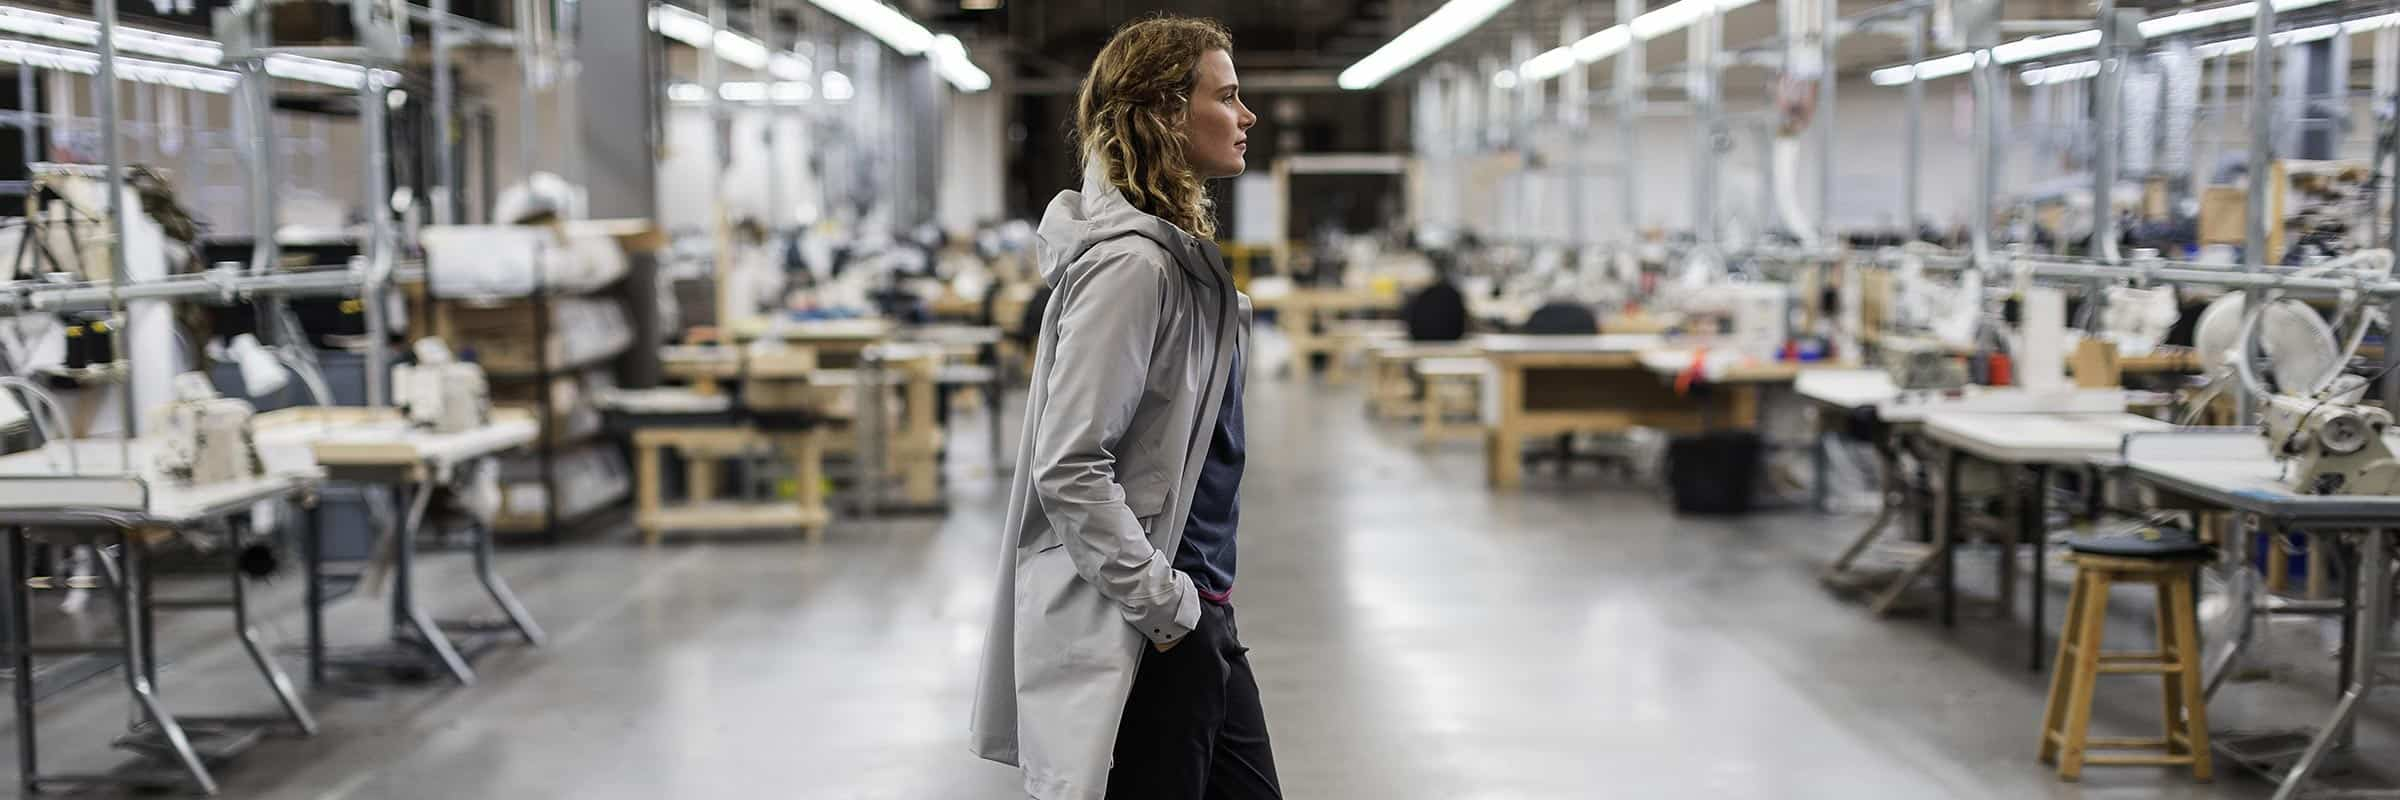 Arc'teryx, Barbour, RAINS, The North Face. Top 5 Urban Raincoats for Women